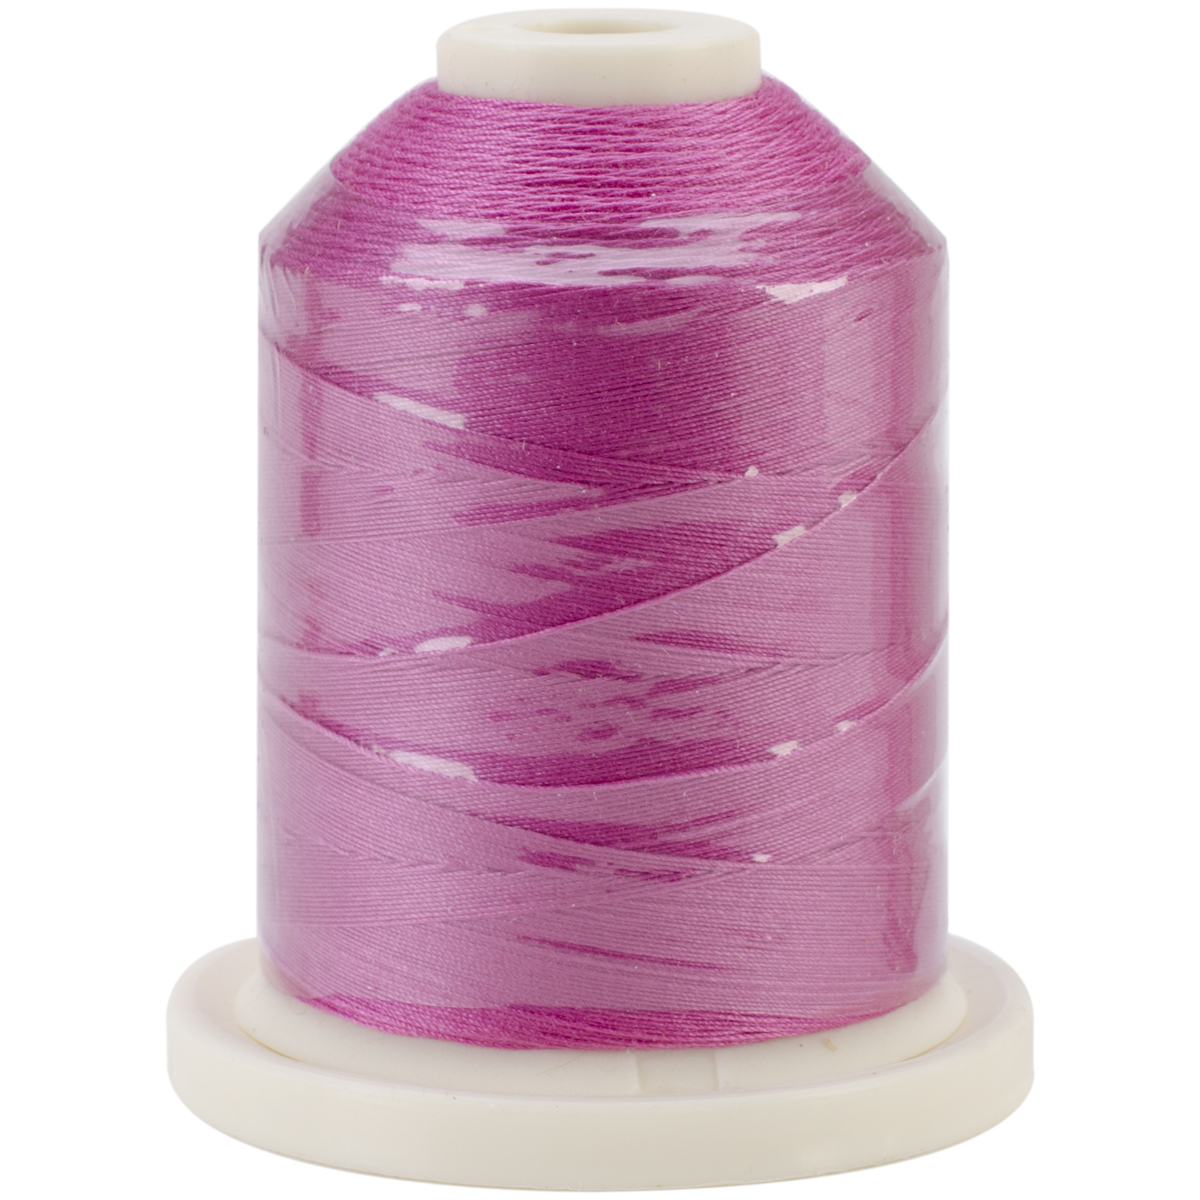 Signature 40 Cotton Solid Colors 700 Yards-Hot Pink Multi-Colored